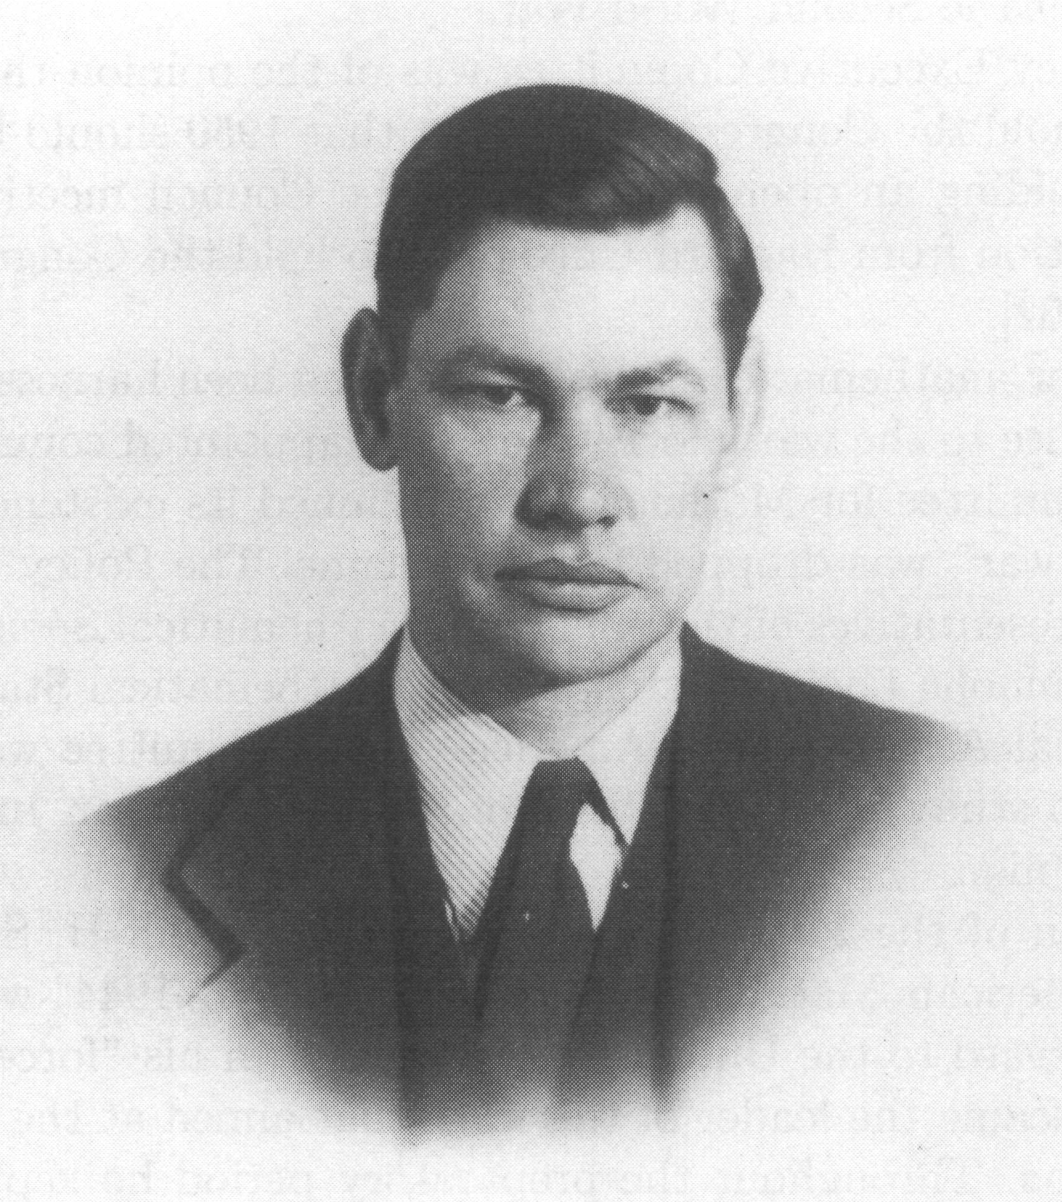 Marshall H. Stone (1903-1989). American mathematician (functional analysis). Stone was in charge of the worldwide work in 1948-1950 that led to the foundation of the new IMU. He was the first President of the new IMU 1952-1954 and President of ICMI 1959-1962. Courtesy AMS, 1947/48.